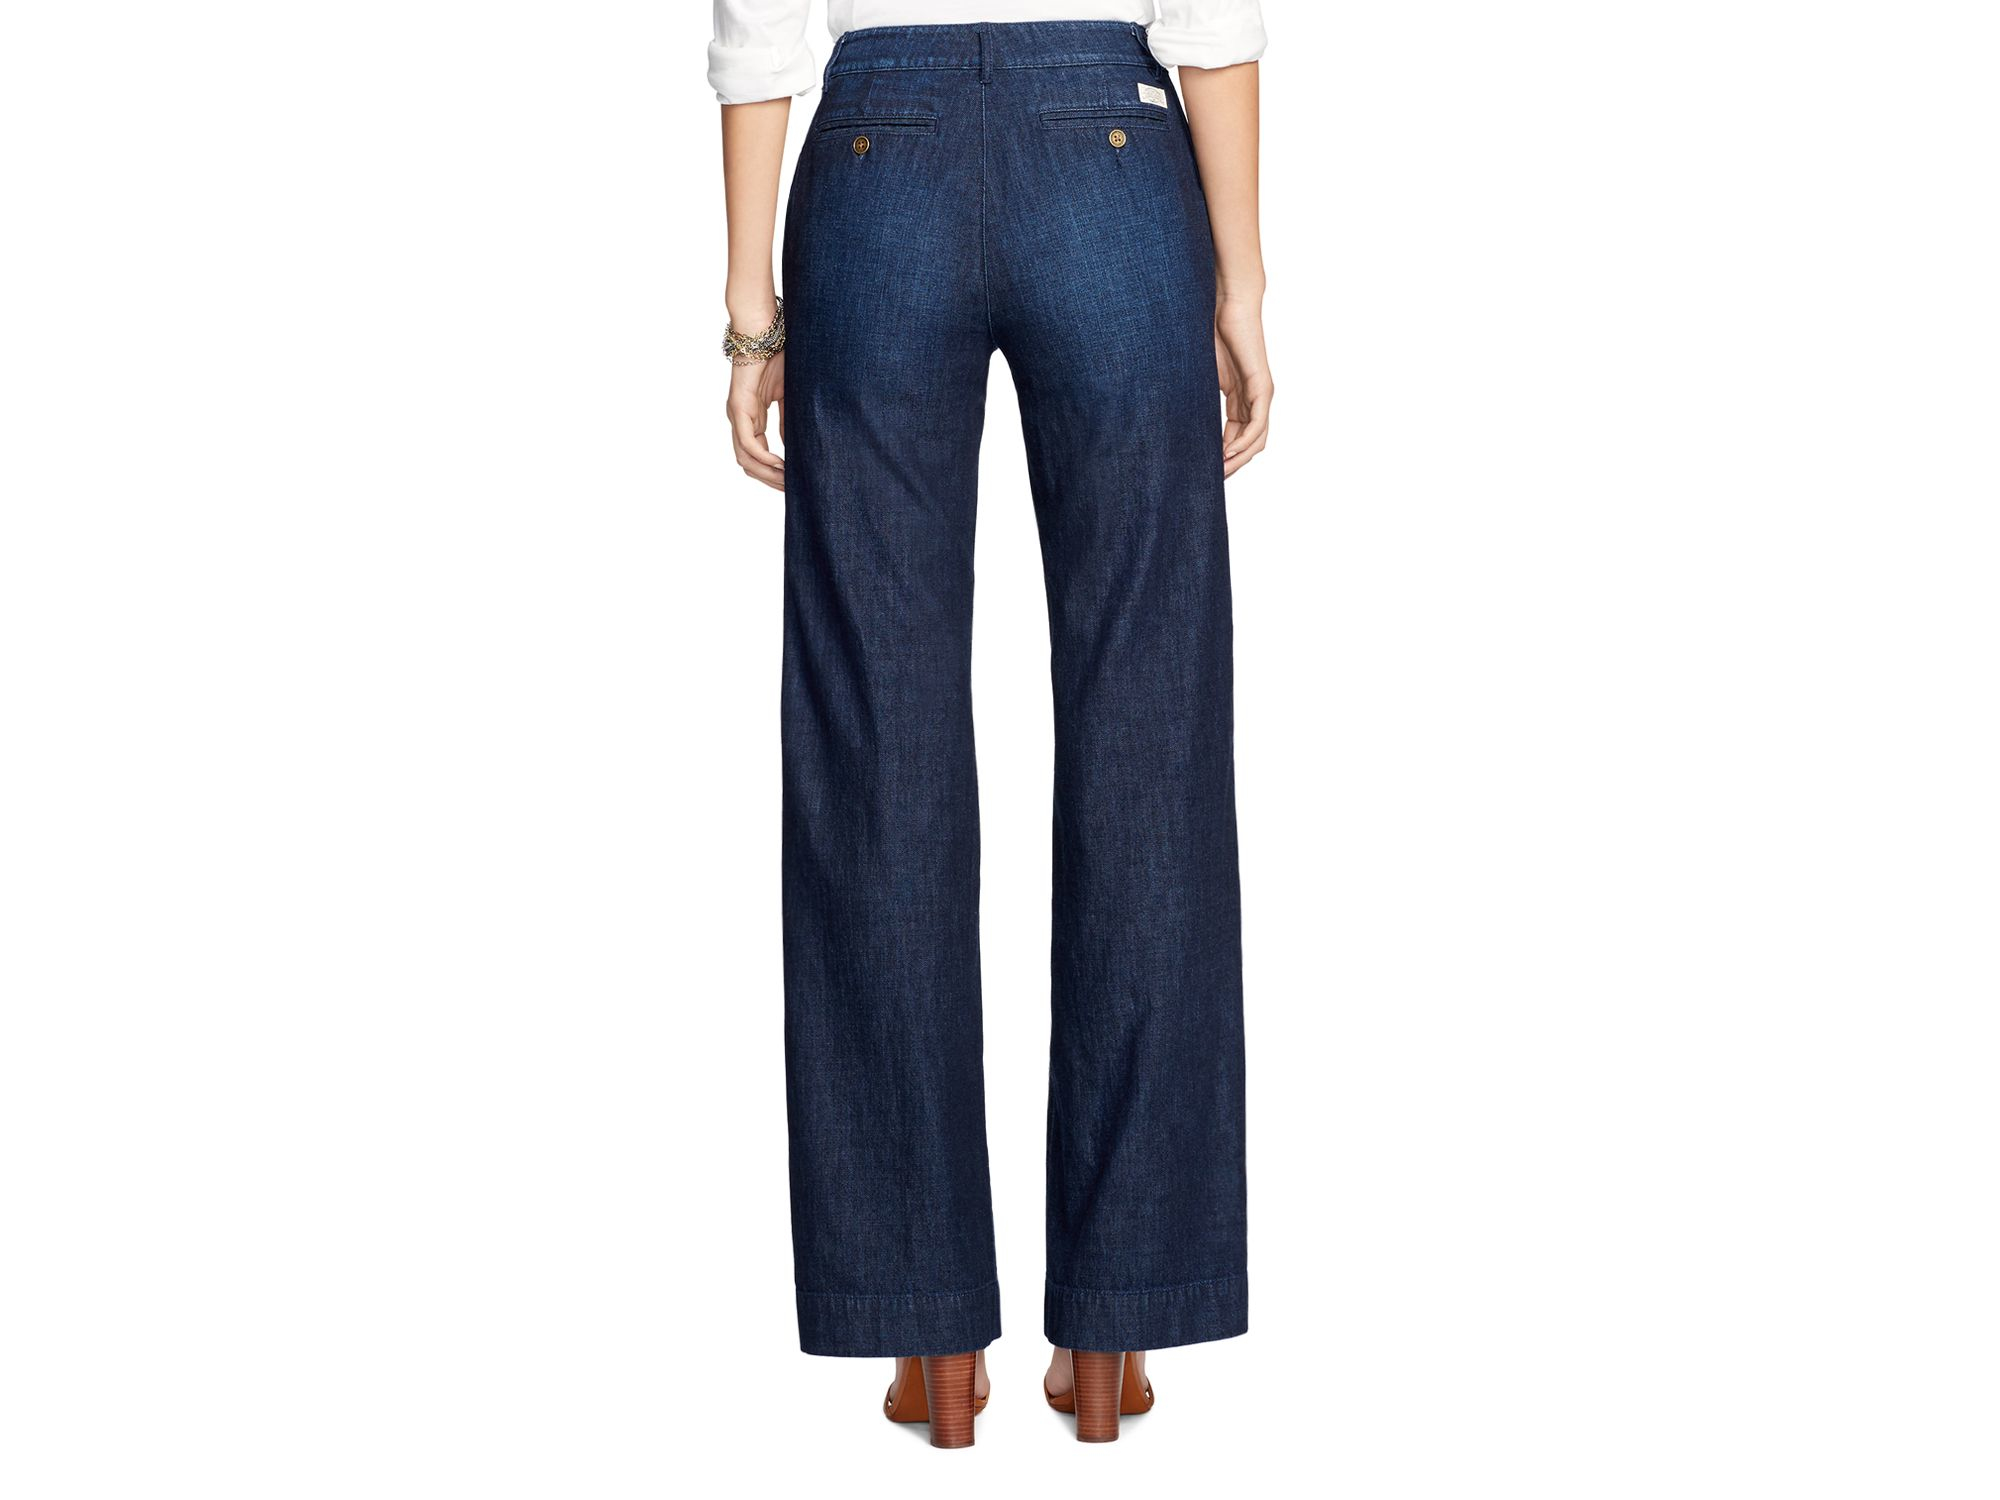 Womens Wide Leg Jeans Photo Album - The Fashions Of Paradise